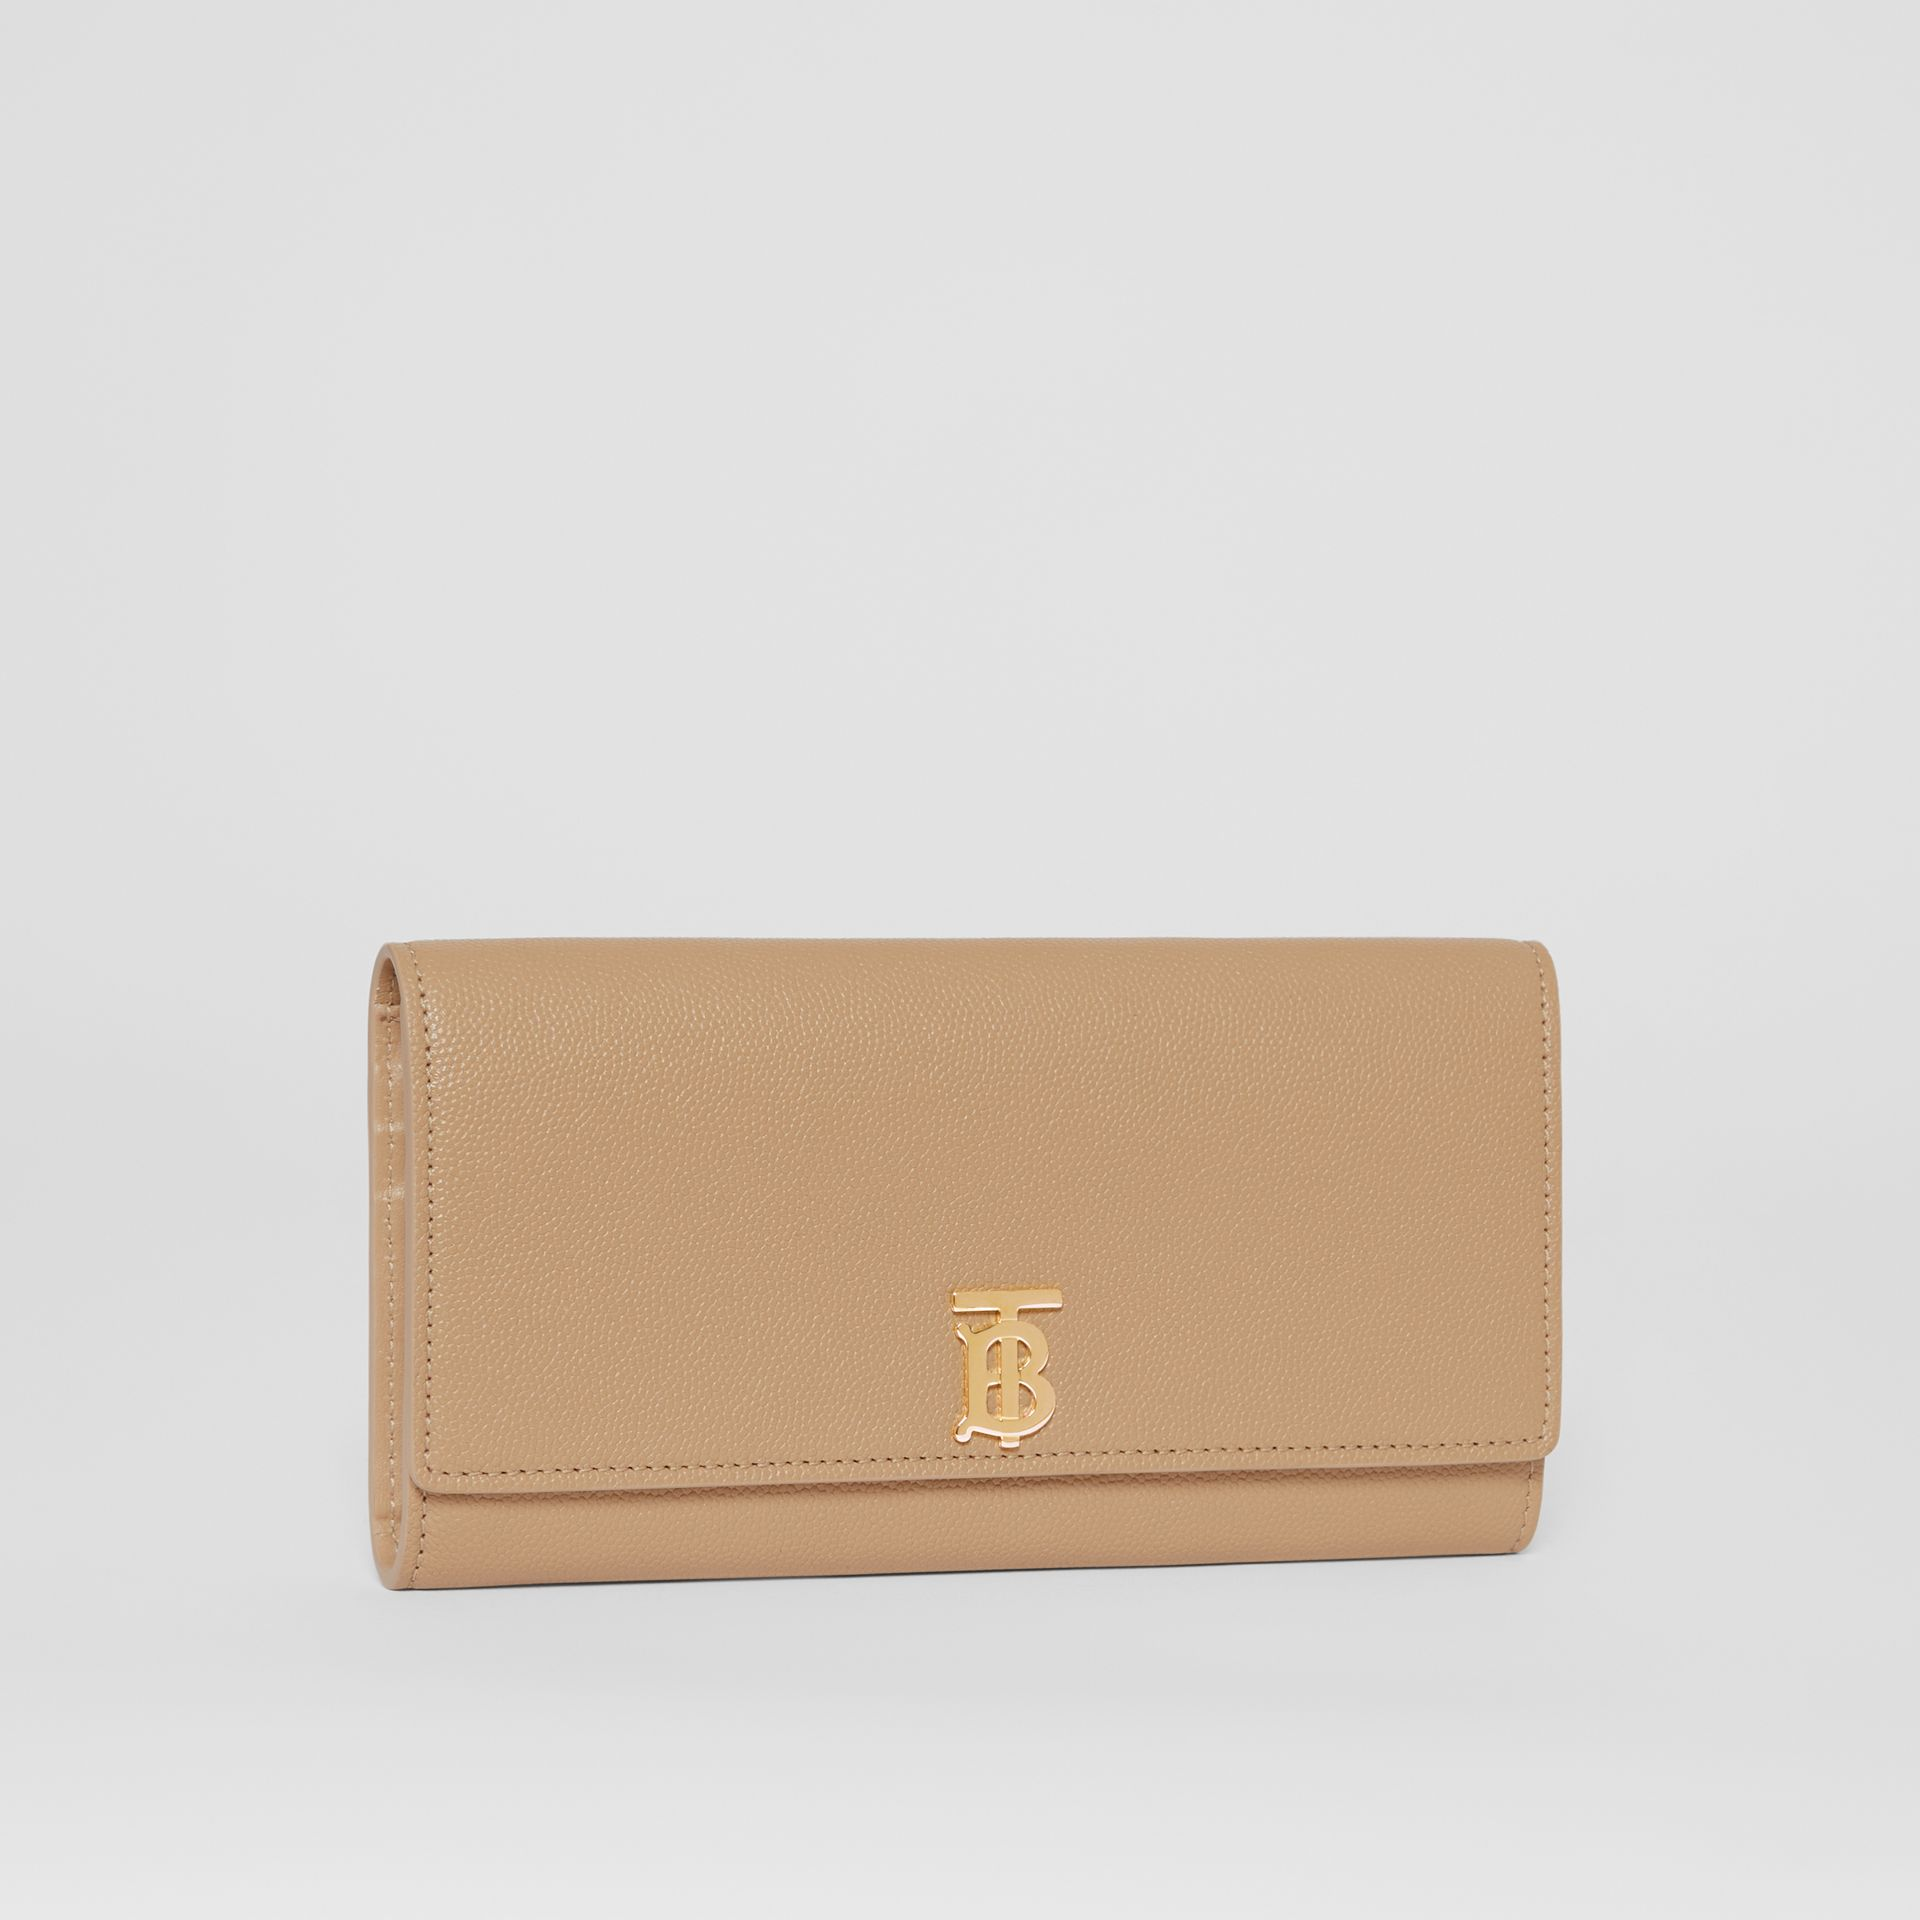 Monogram Motif Grainy Leather Continental Wallet in Archive Beige - Women | Burberry Hong Kong S.A.R - gallery image 4